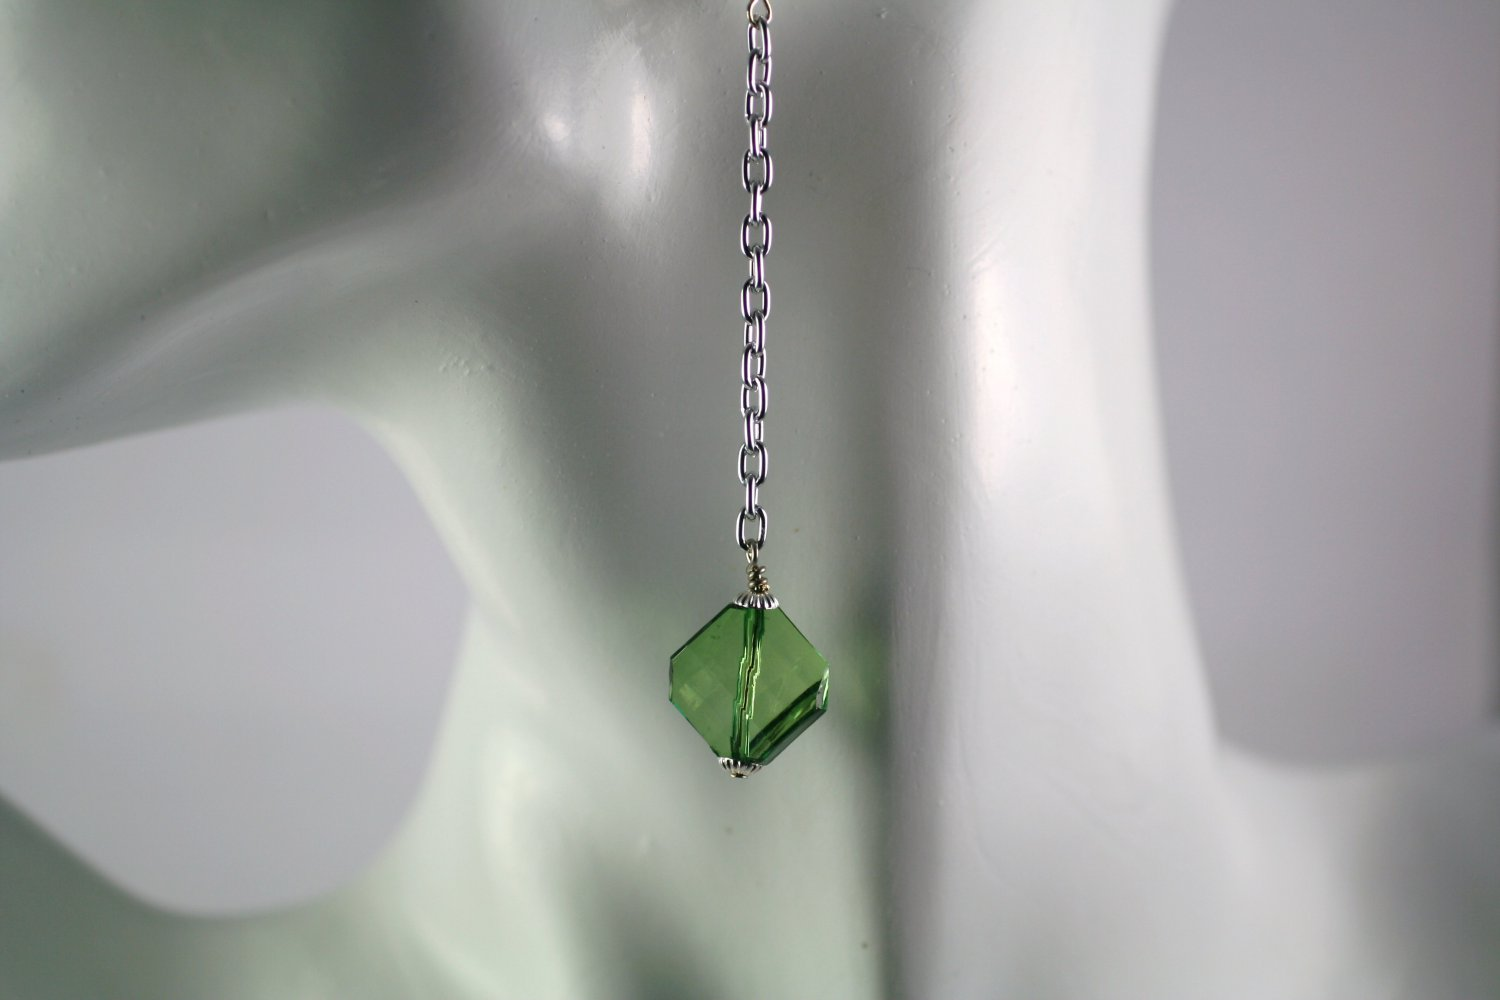 Silver Chain Drop Dangle Earrings with  Green Triangle  Beads Handcrafted Jewelry